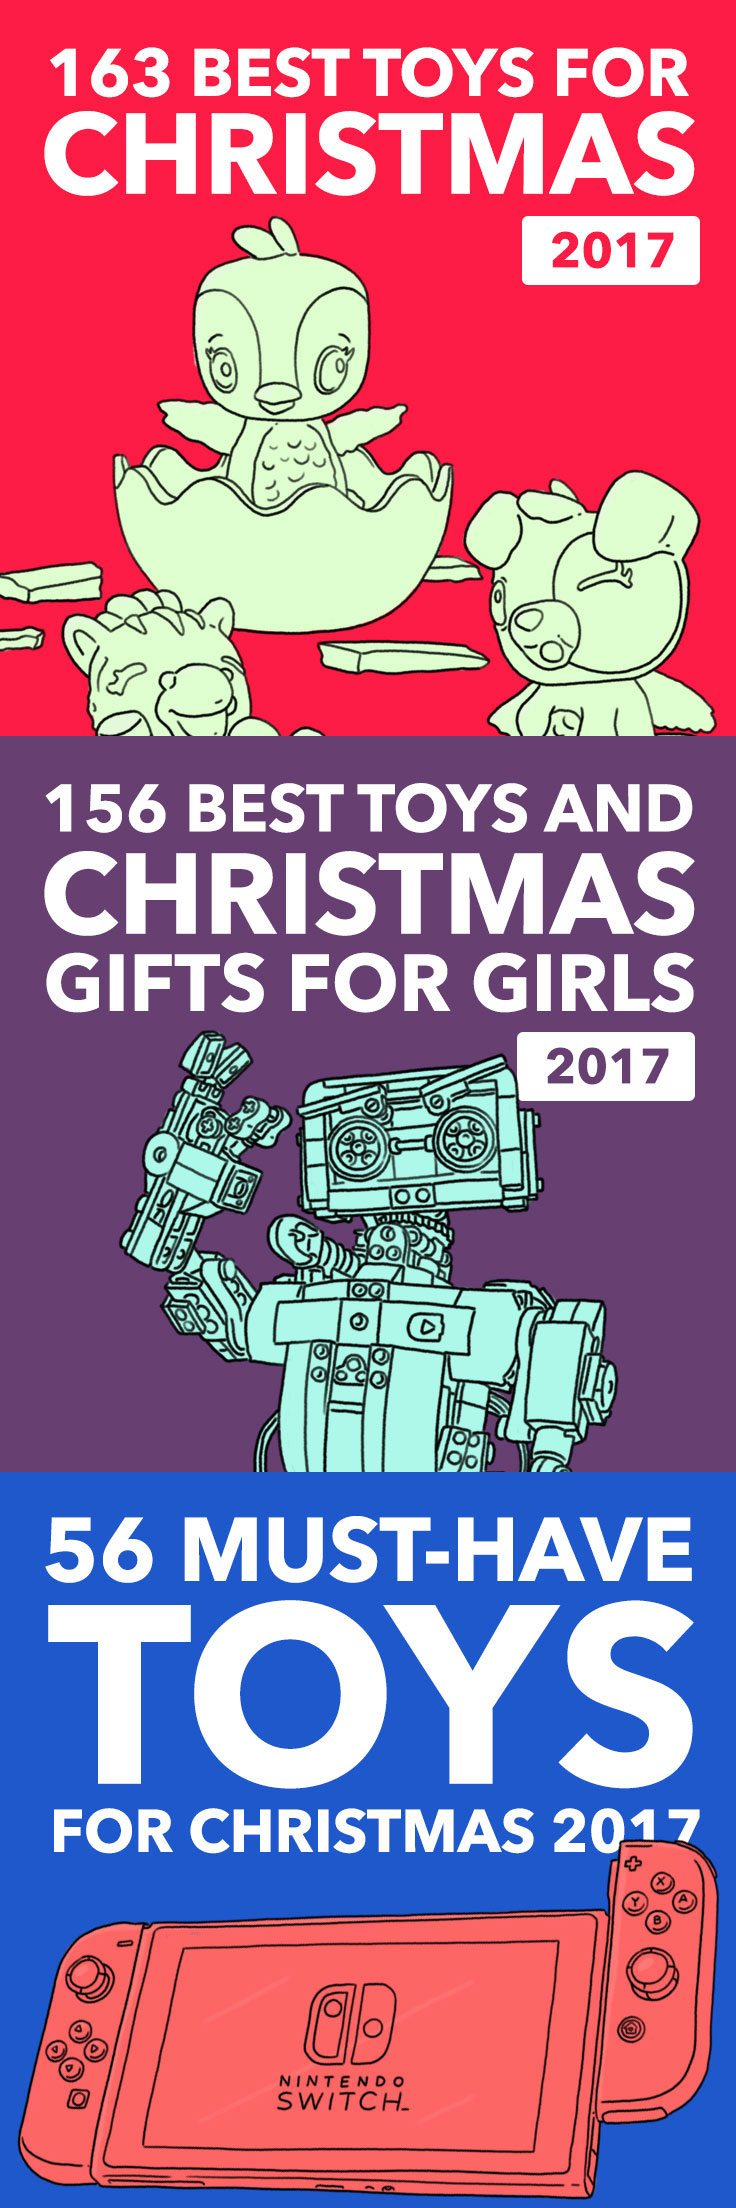 top toys 2017